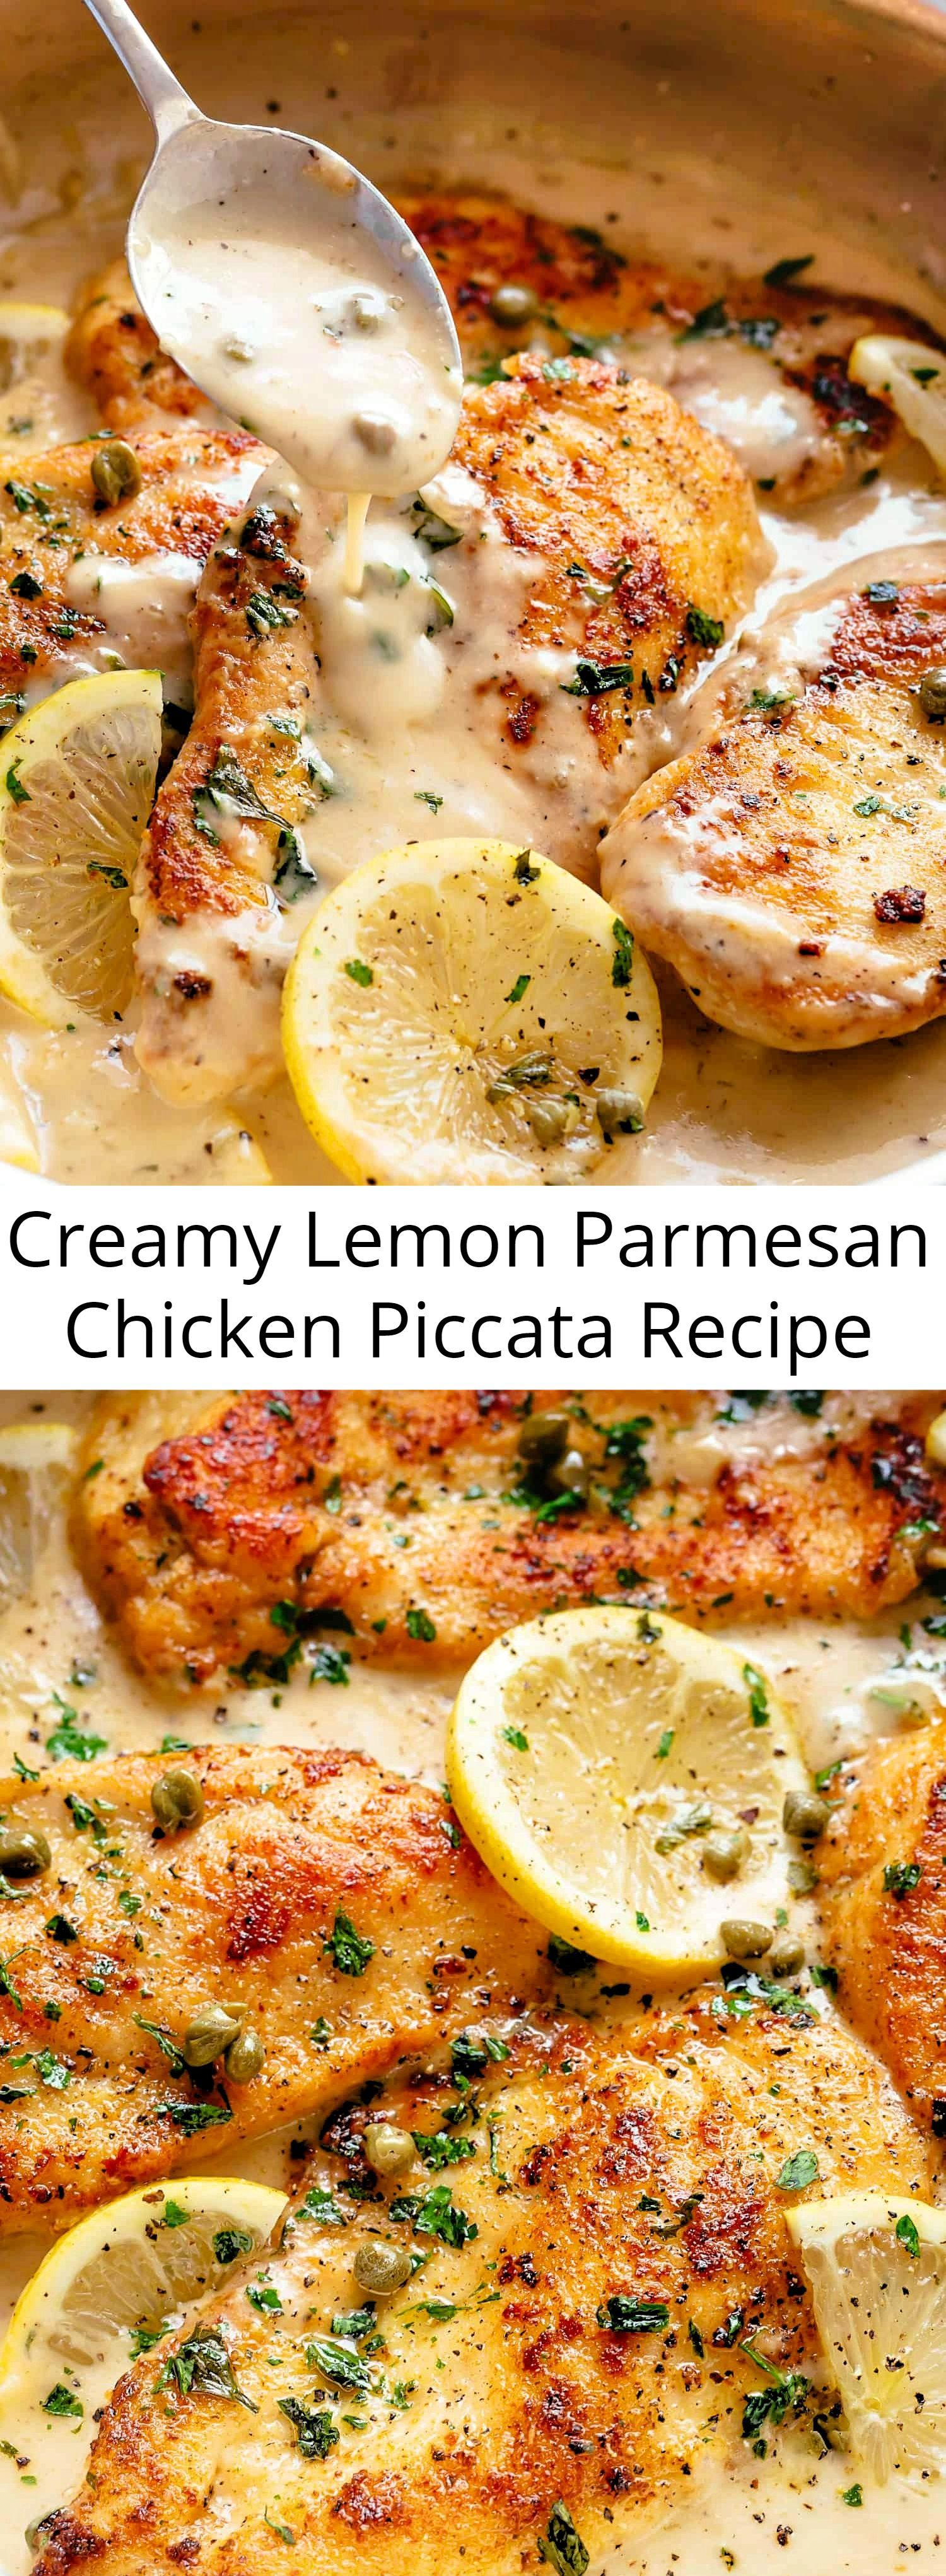 The ultimate in gourmet comfort food with parmesan cheese, garlic and a creamy l…